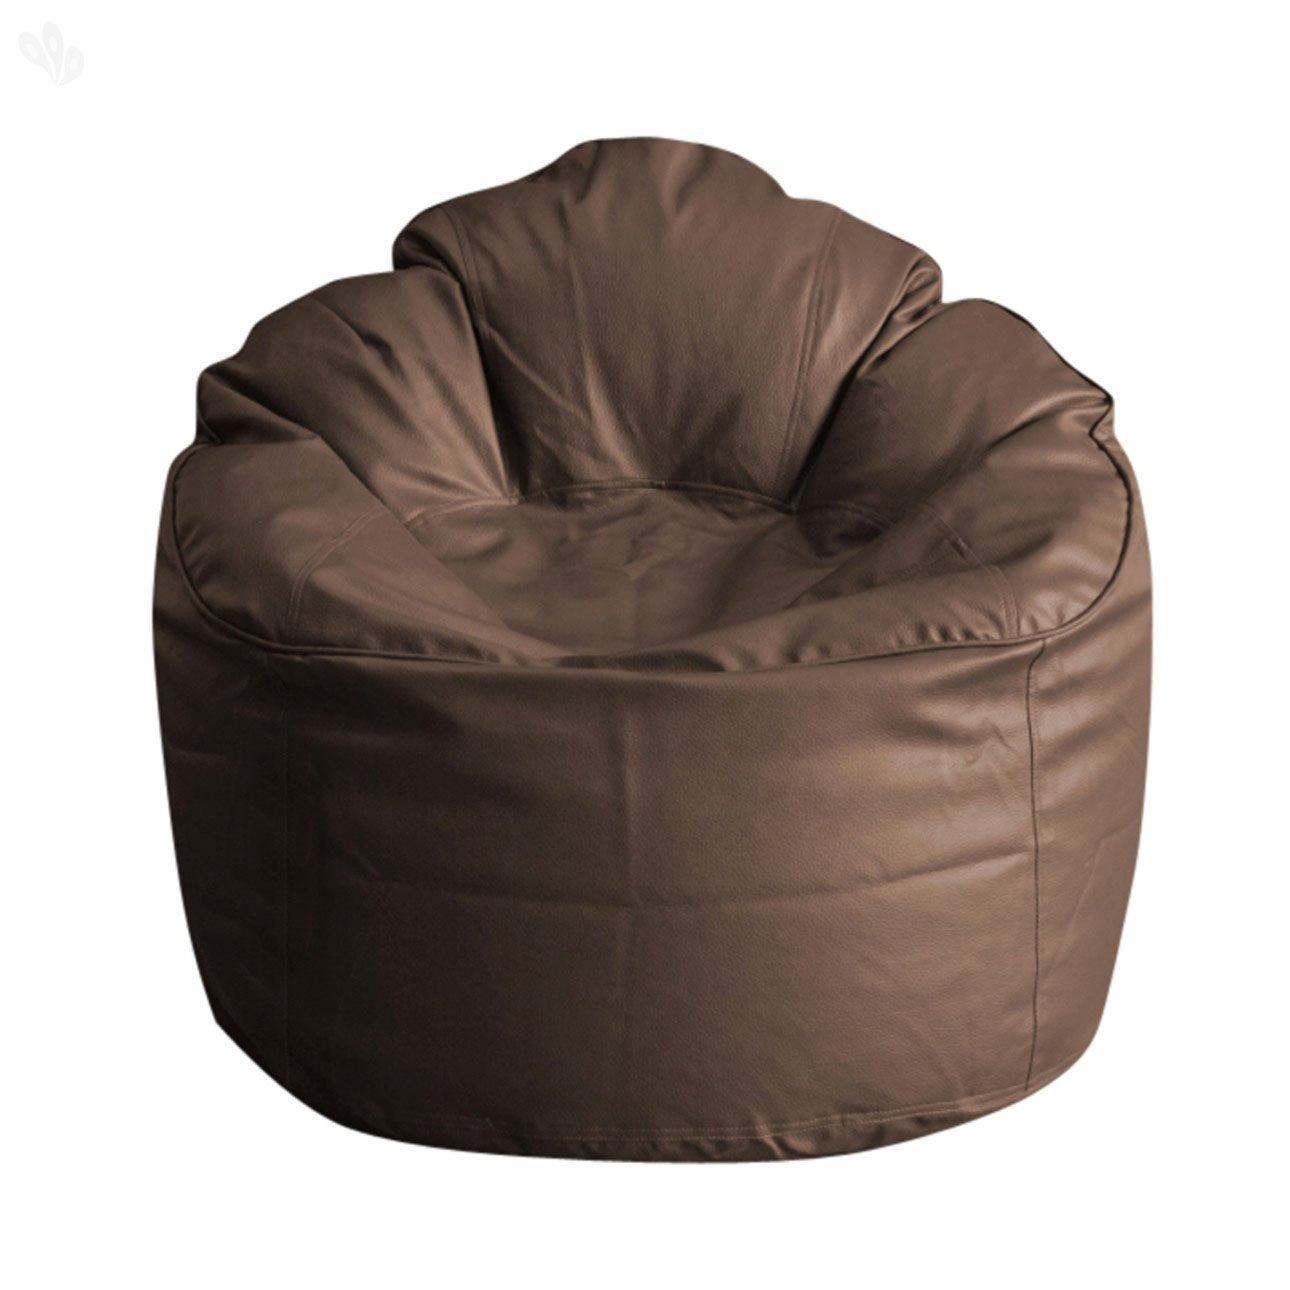 buy bean bag chair desk chairs for home office where can i the best furniture